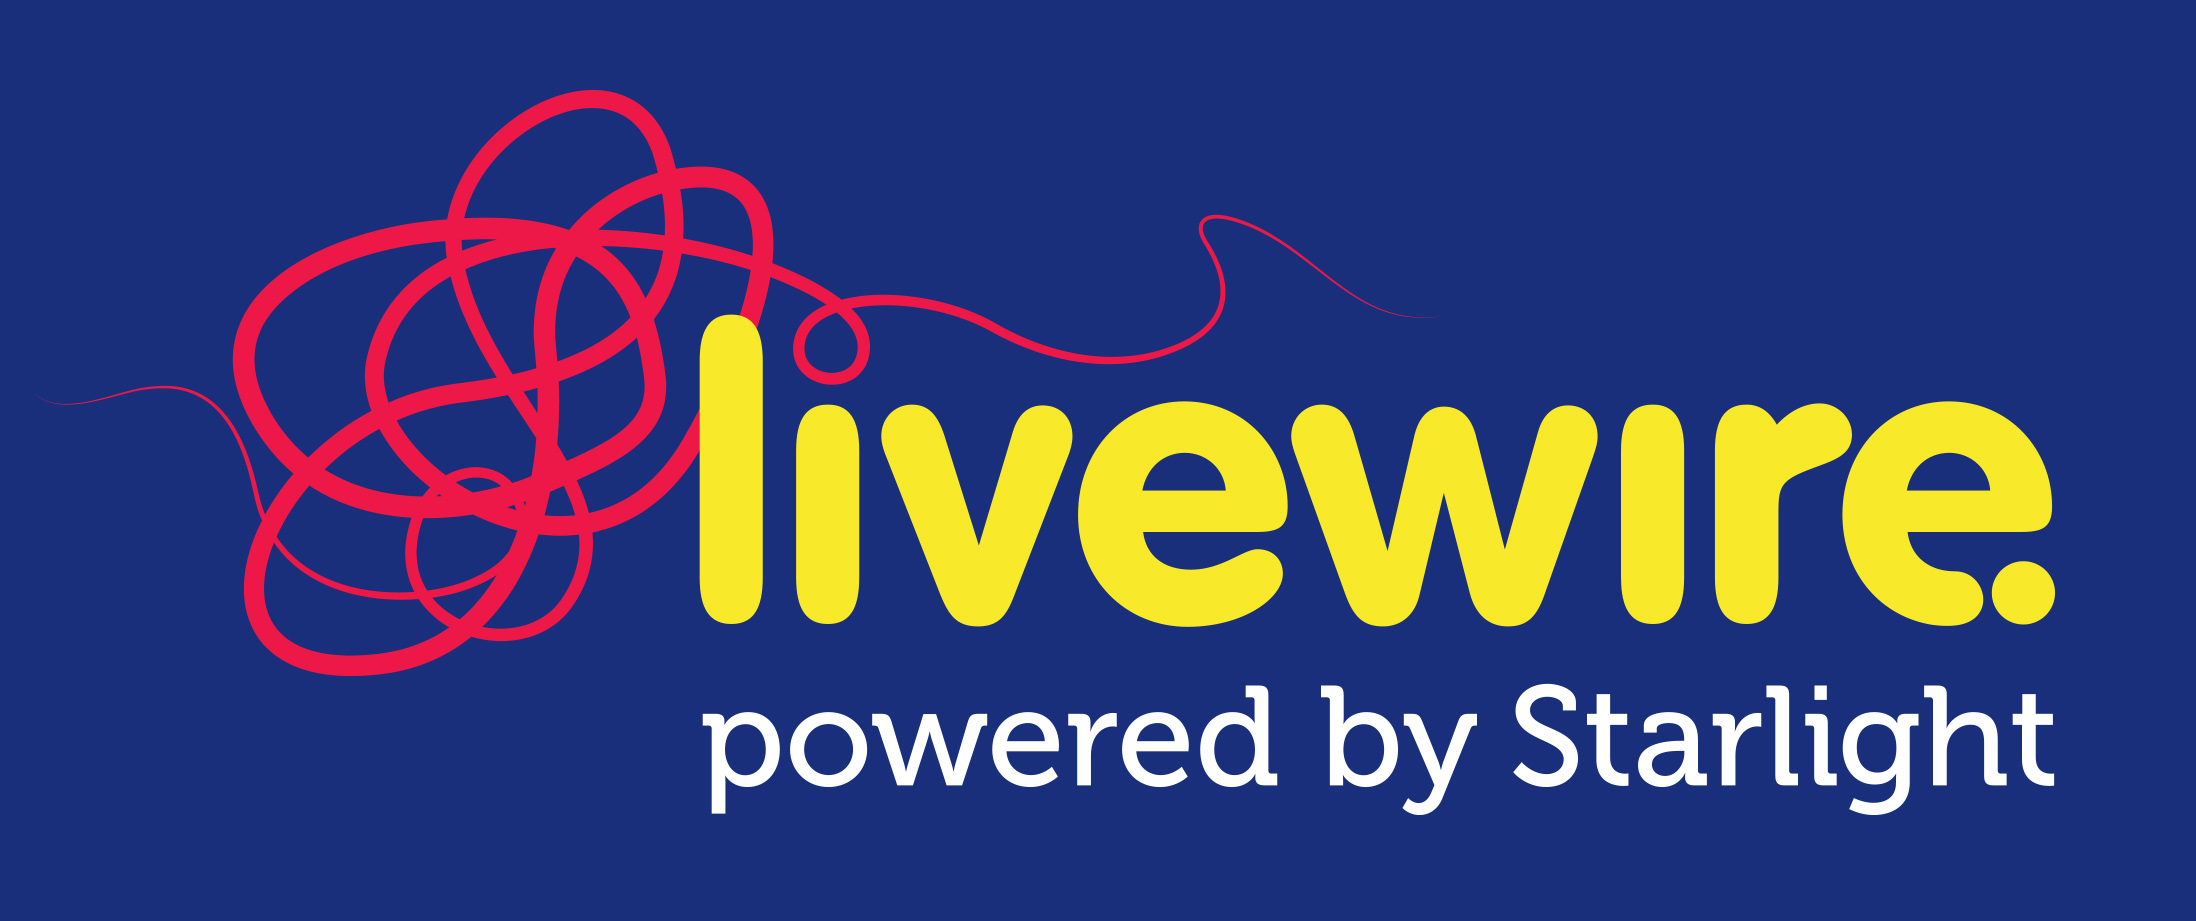 Livewire, powered by Starlight